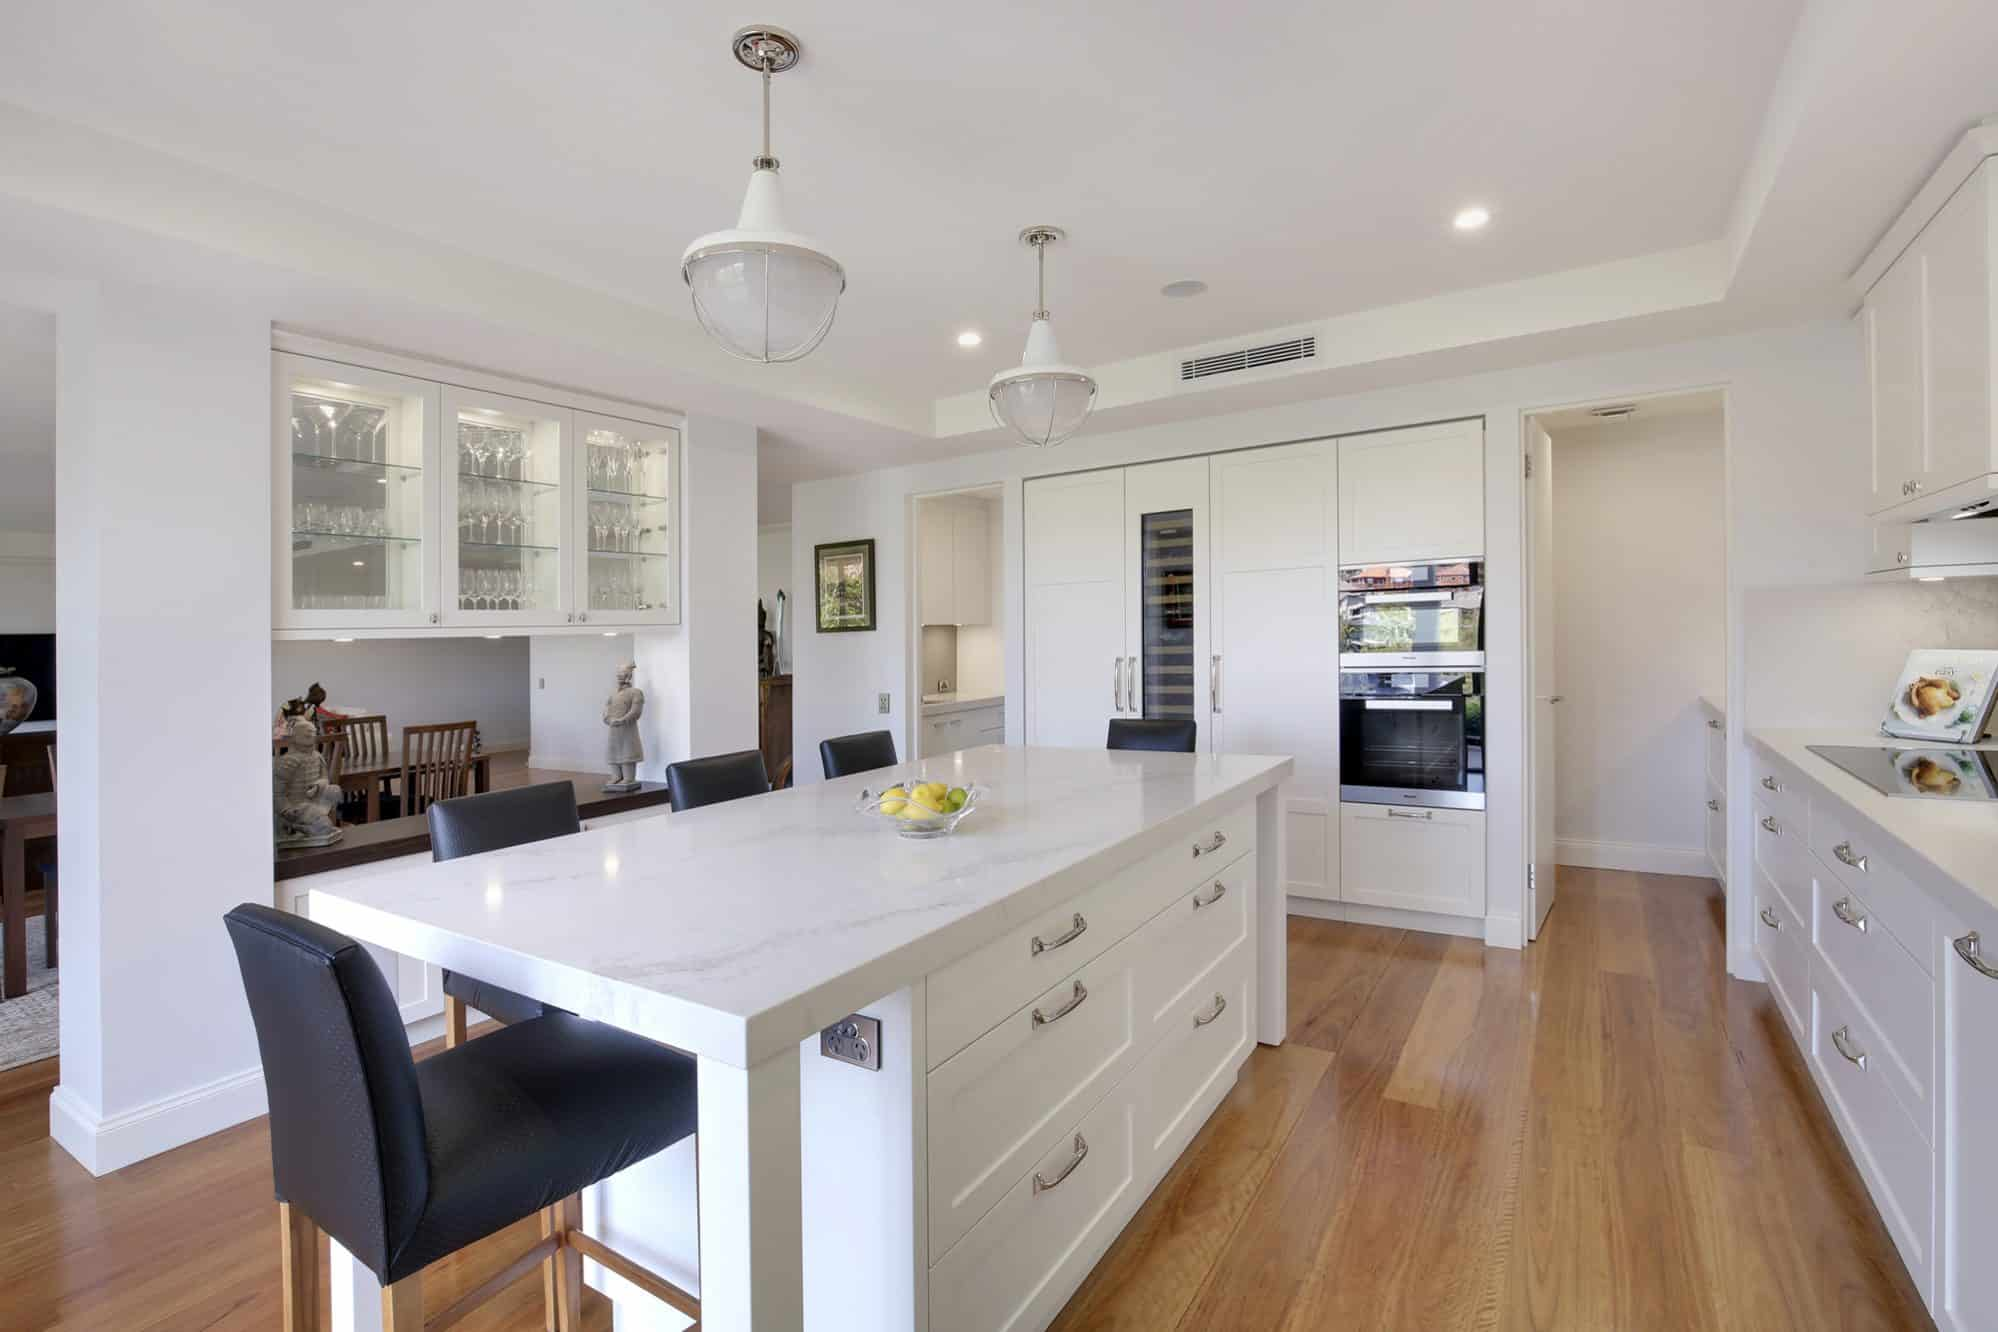 This shaker kitchen includes scullery, laundry and display niche